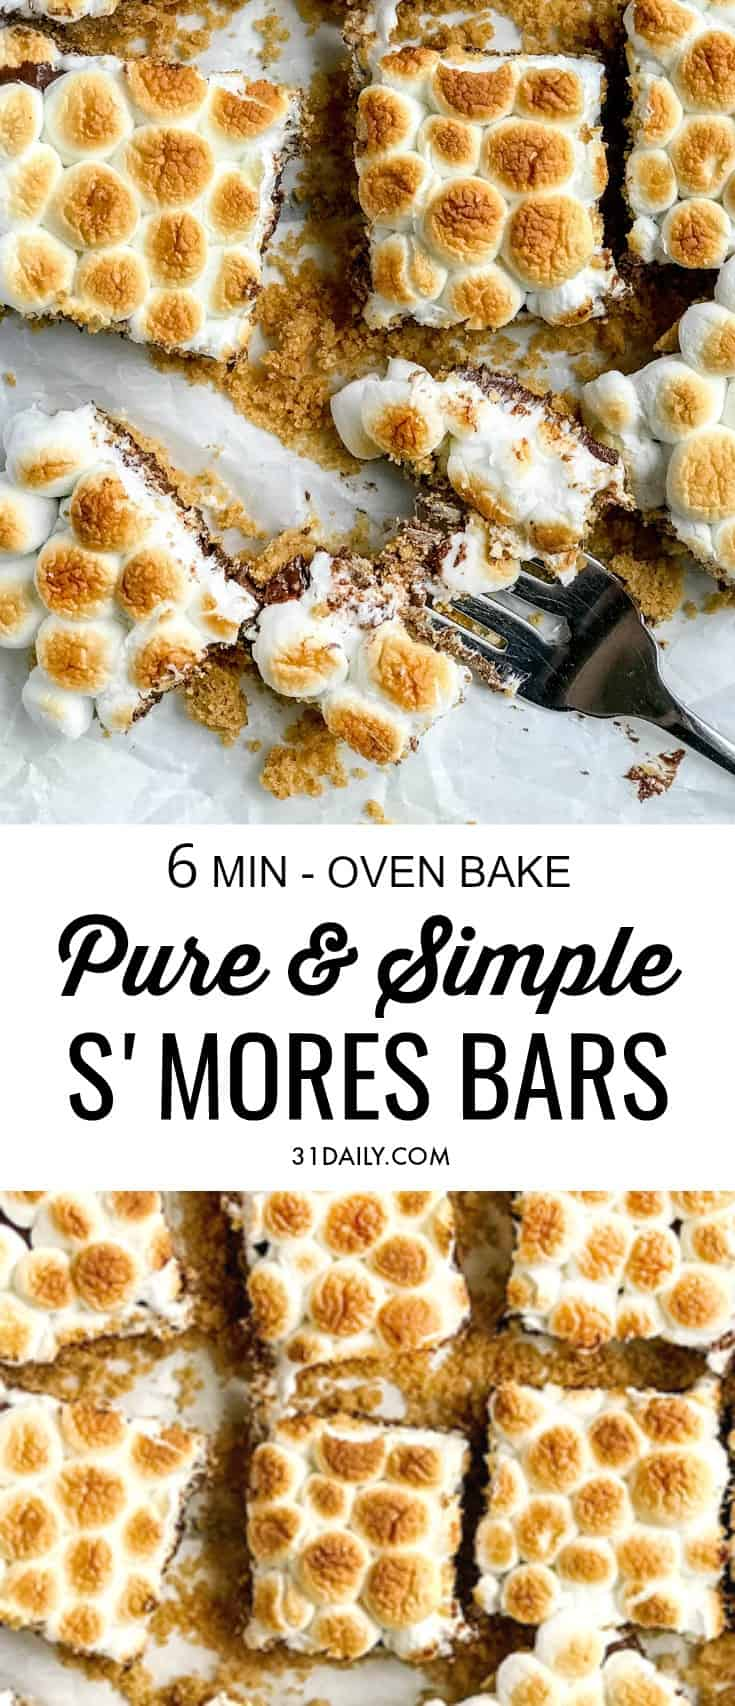 Simple, Pure, and Easy S'mores Bars... in the Oven | 31Daily.com